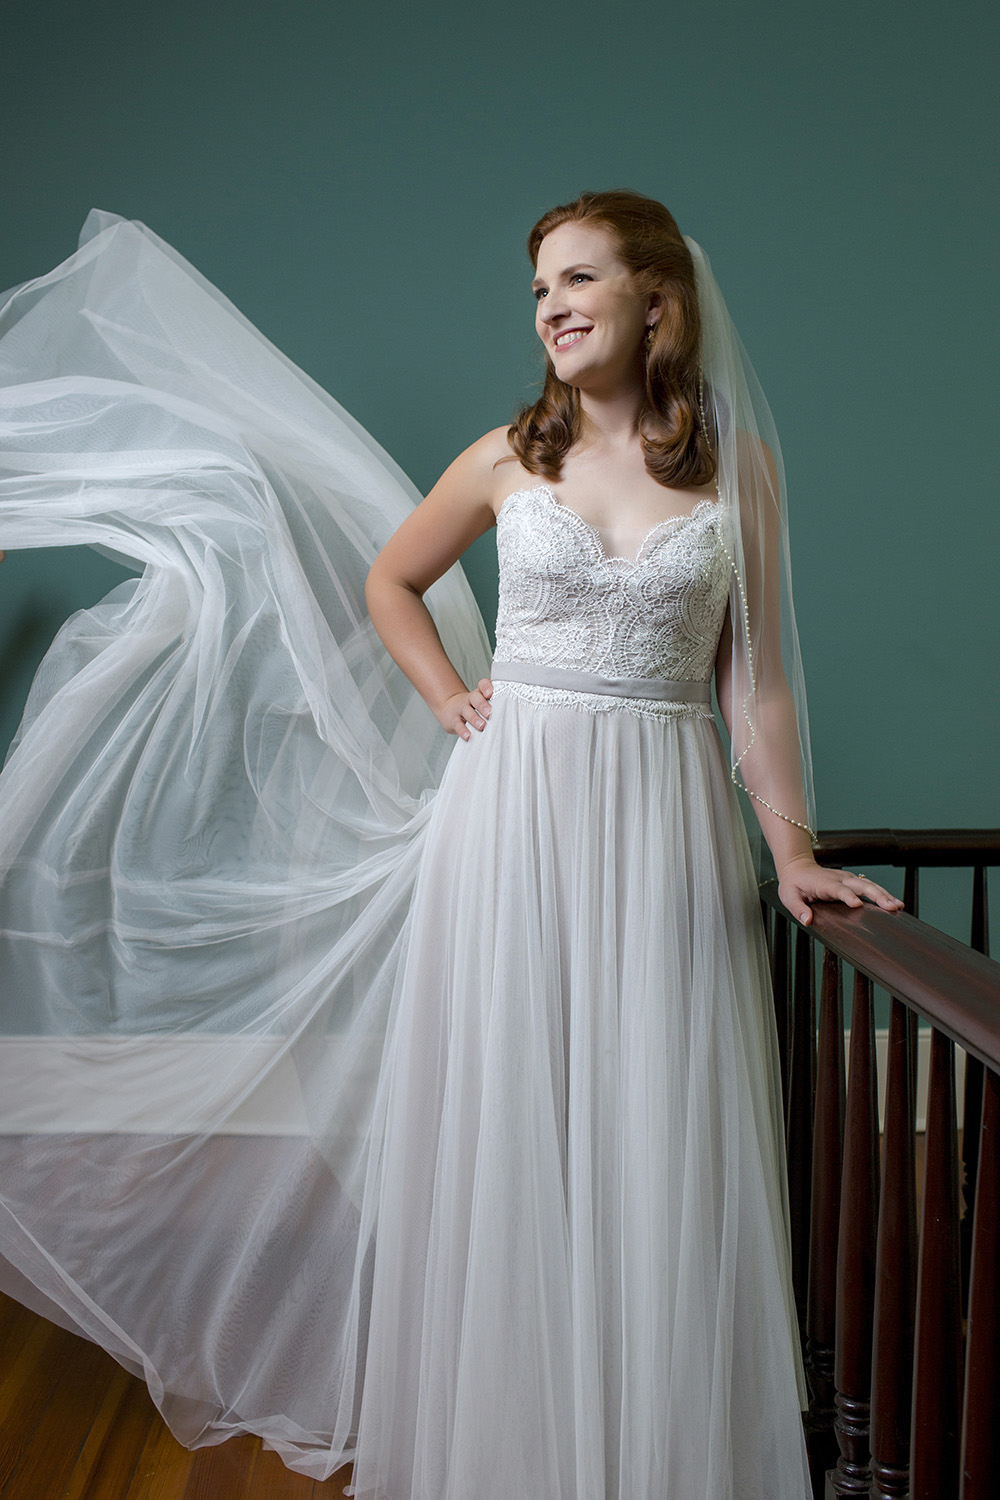 Stephanie-Bridals-0077.JPG